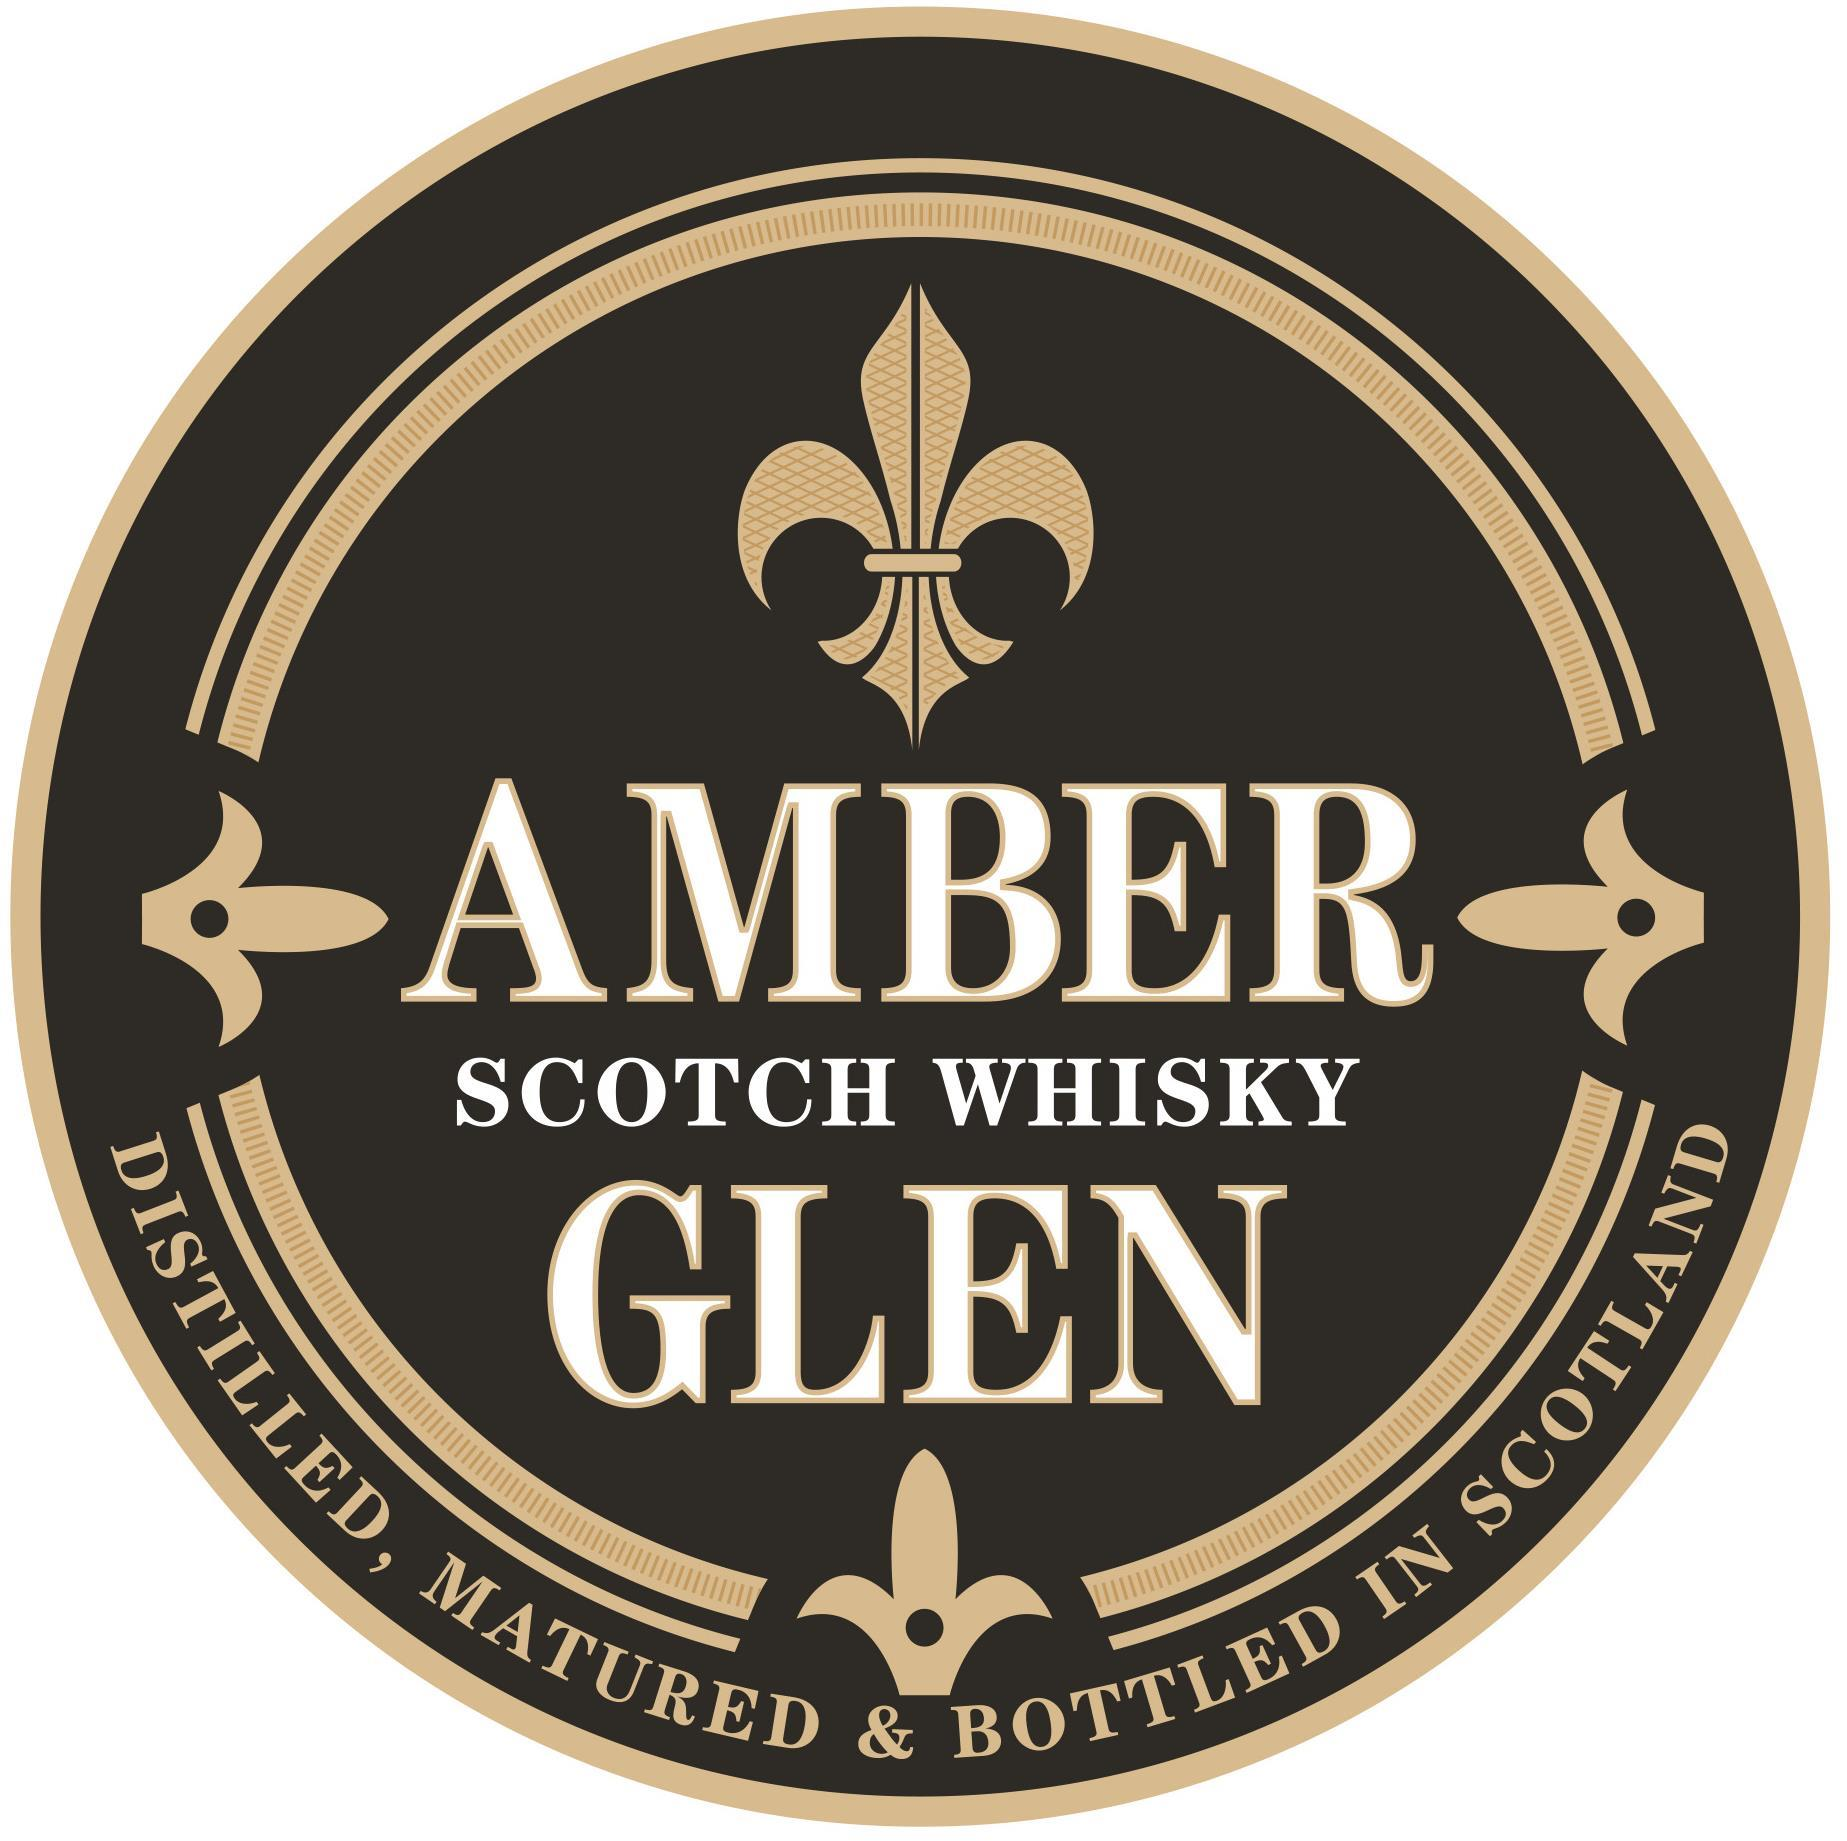 Avatar - Amber Glen Scotch Whisky